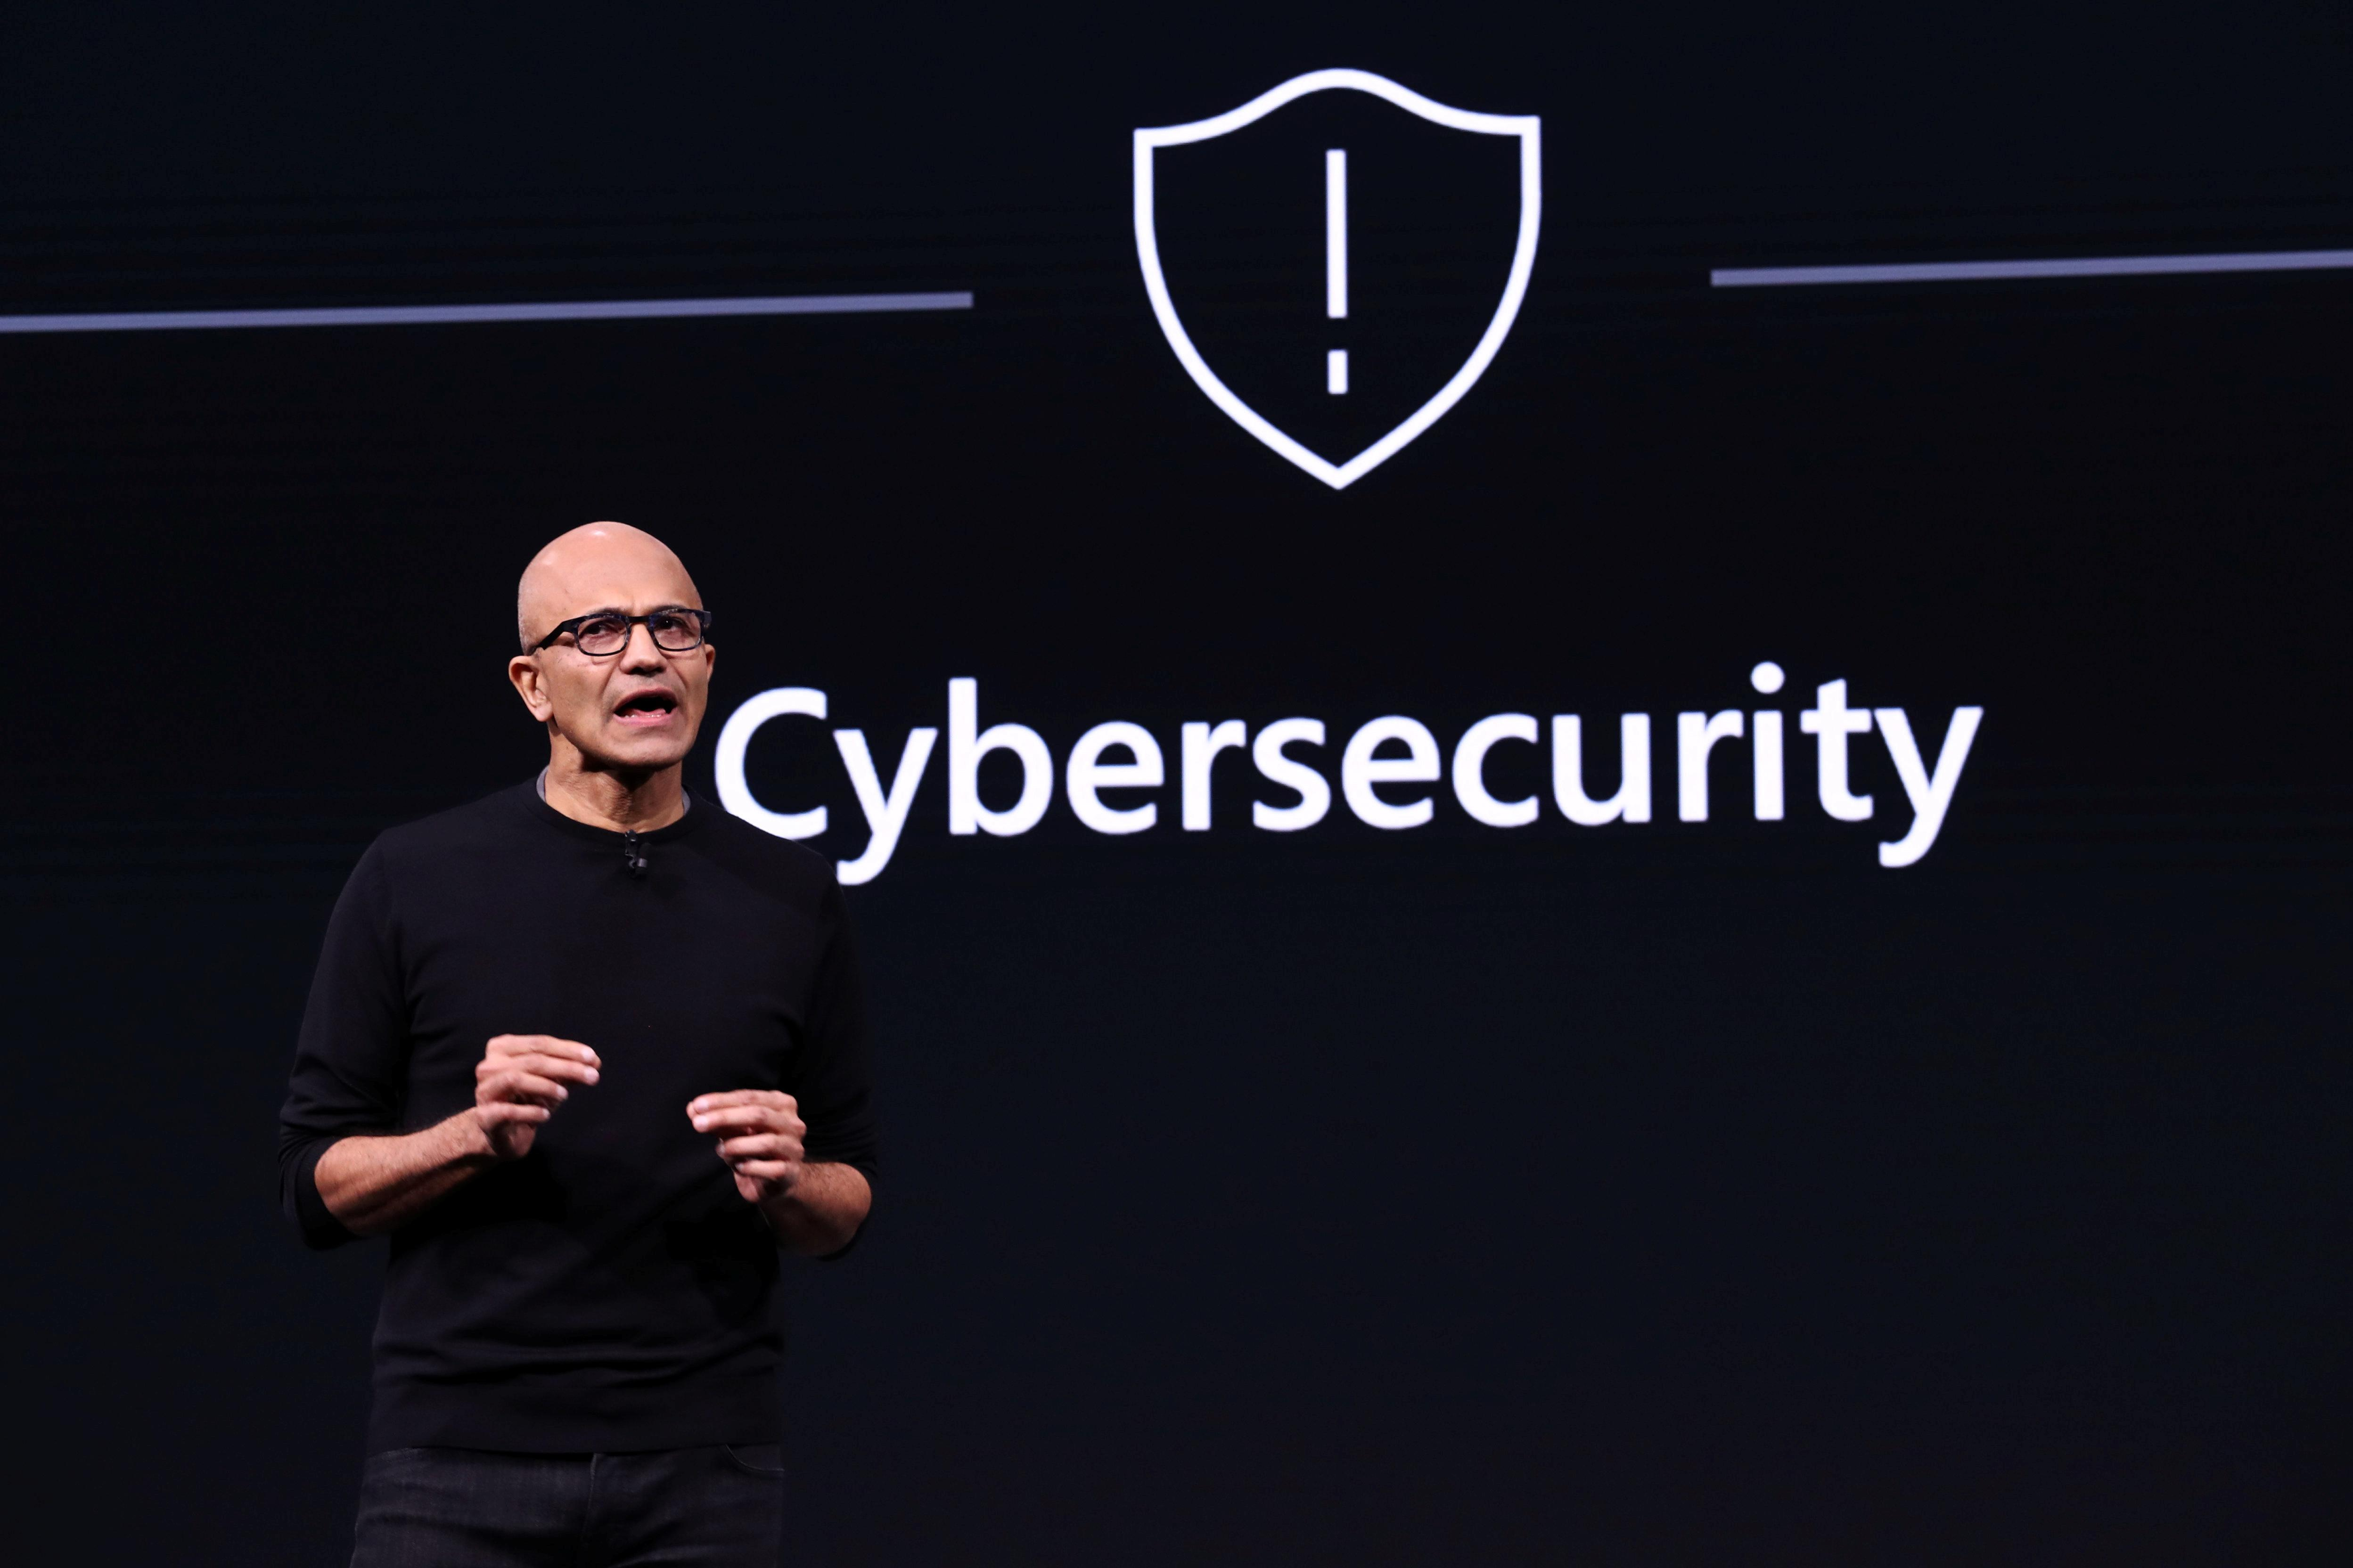 Microsoft CEO Satya Nadella: 'I really would love for the 2020s to be defined differently'